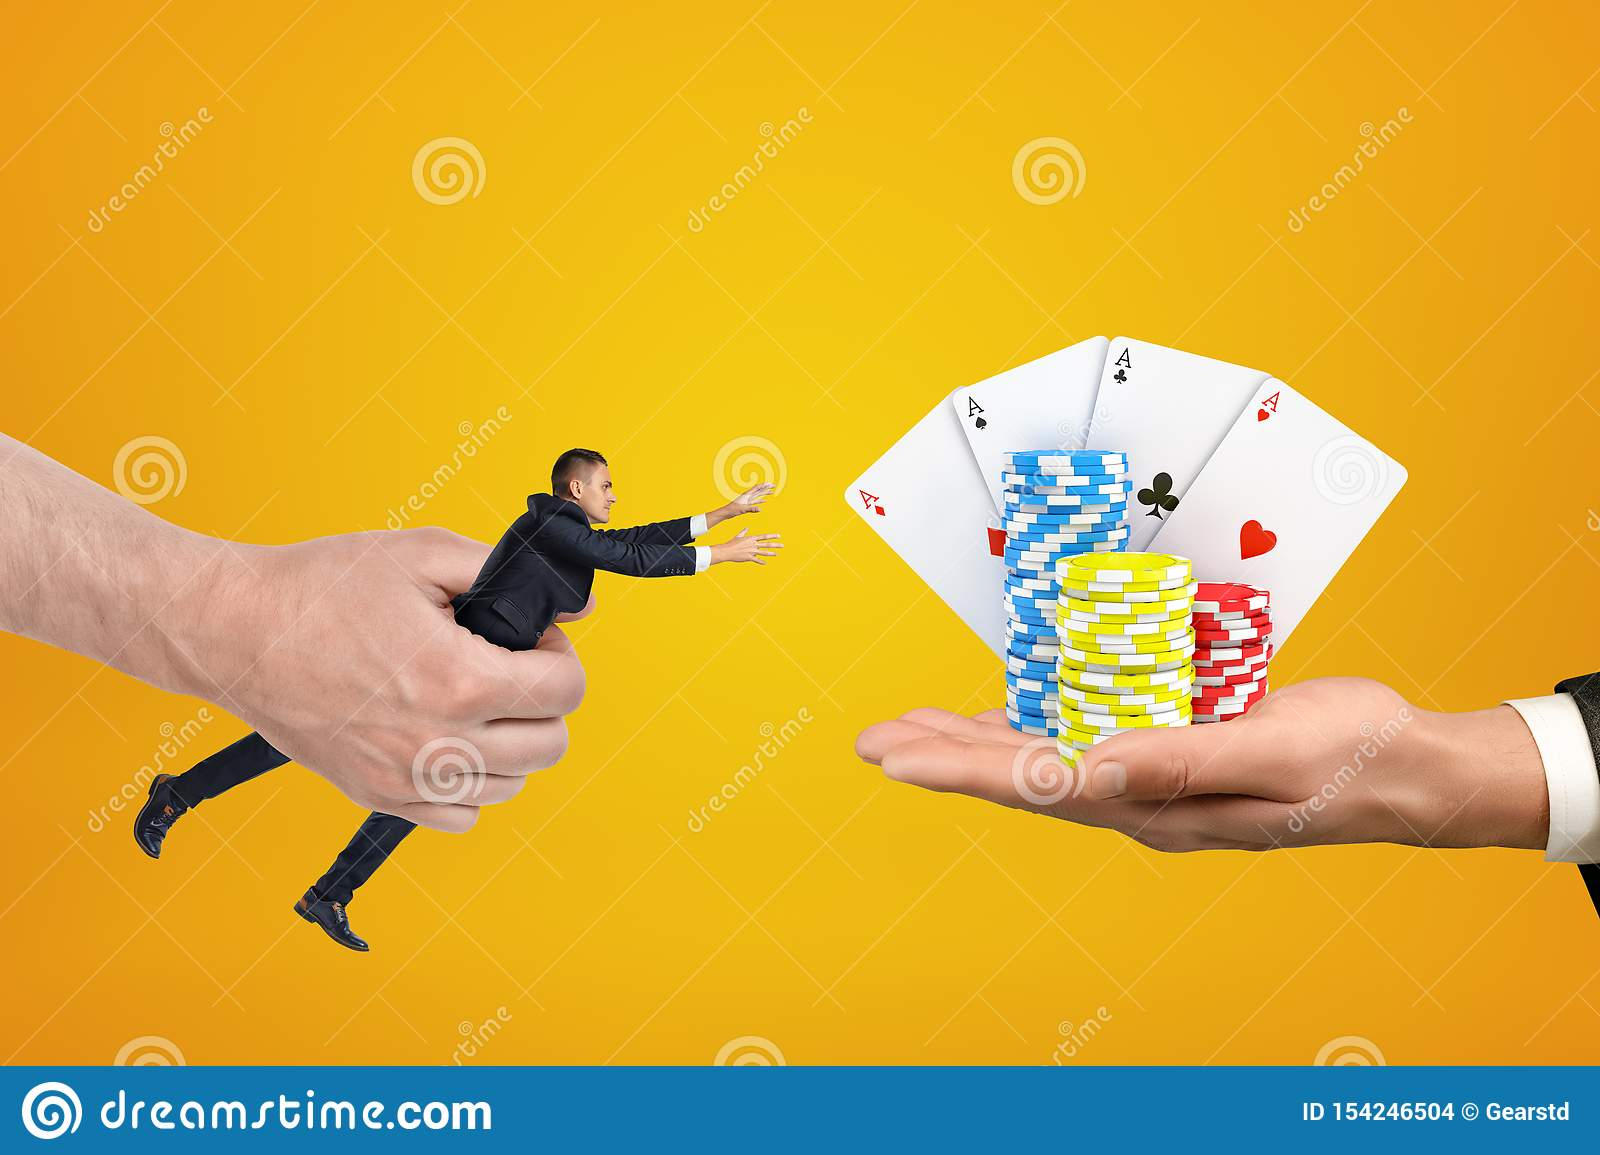 Man`s hand holding tiny businessman who is reaching out with both hands for cards and chips on another man`s palm on